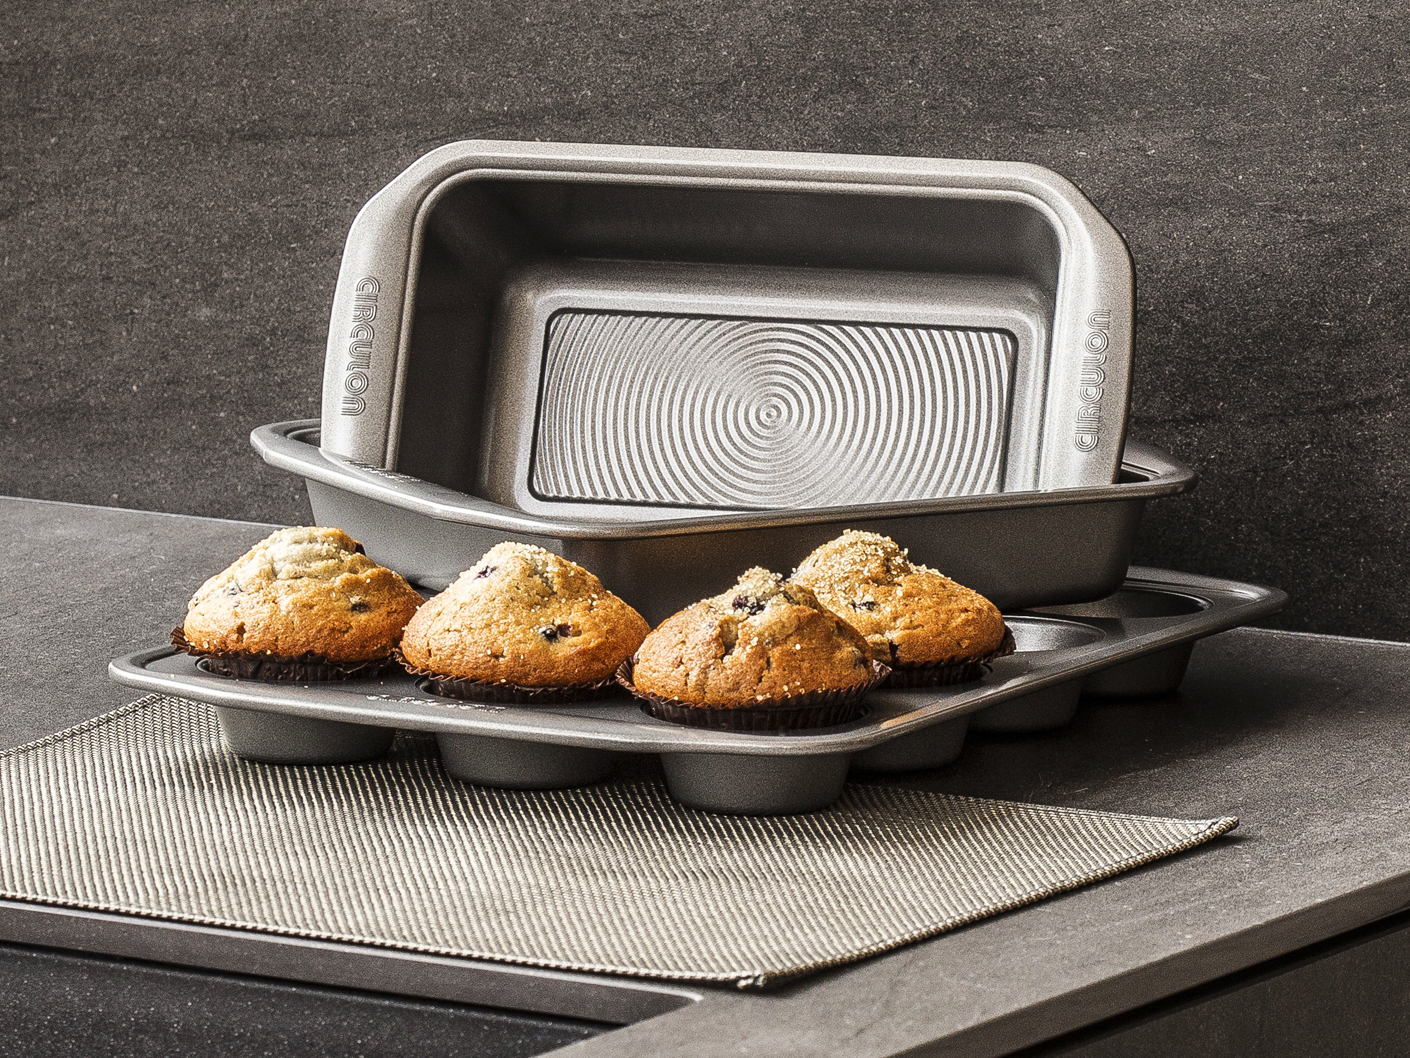 meyer-bakeware-product-photography-in-manchester